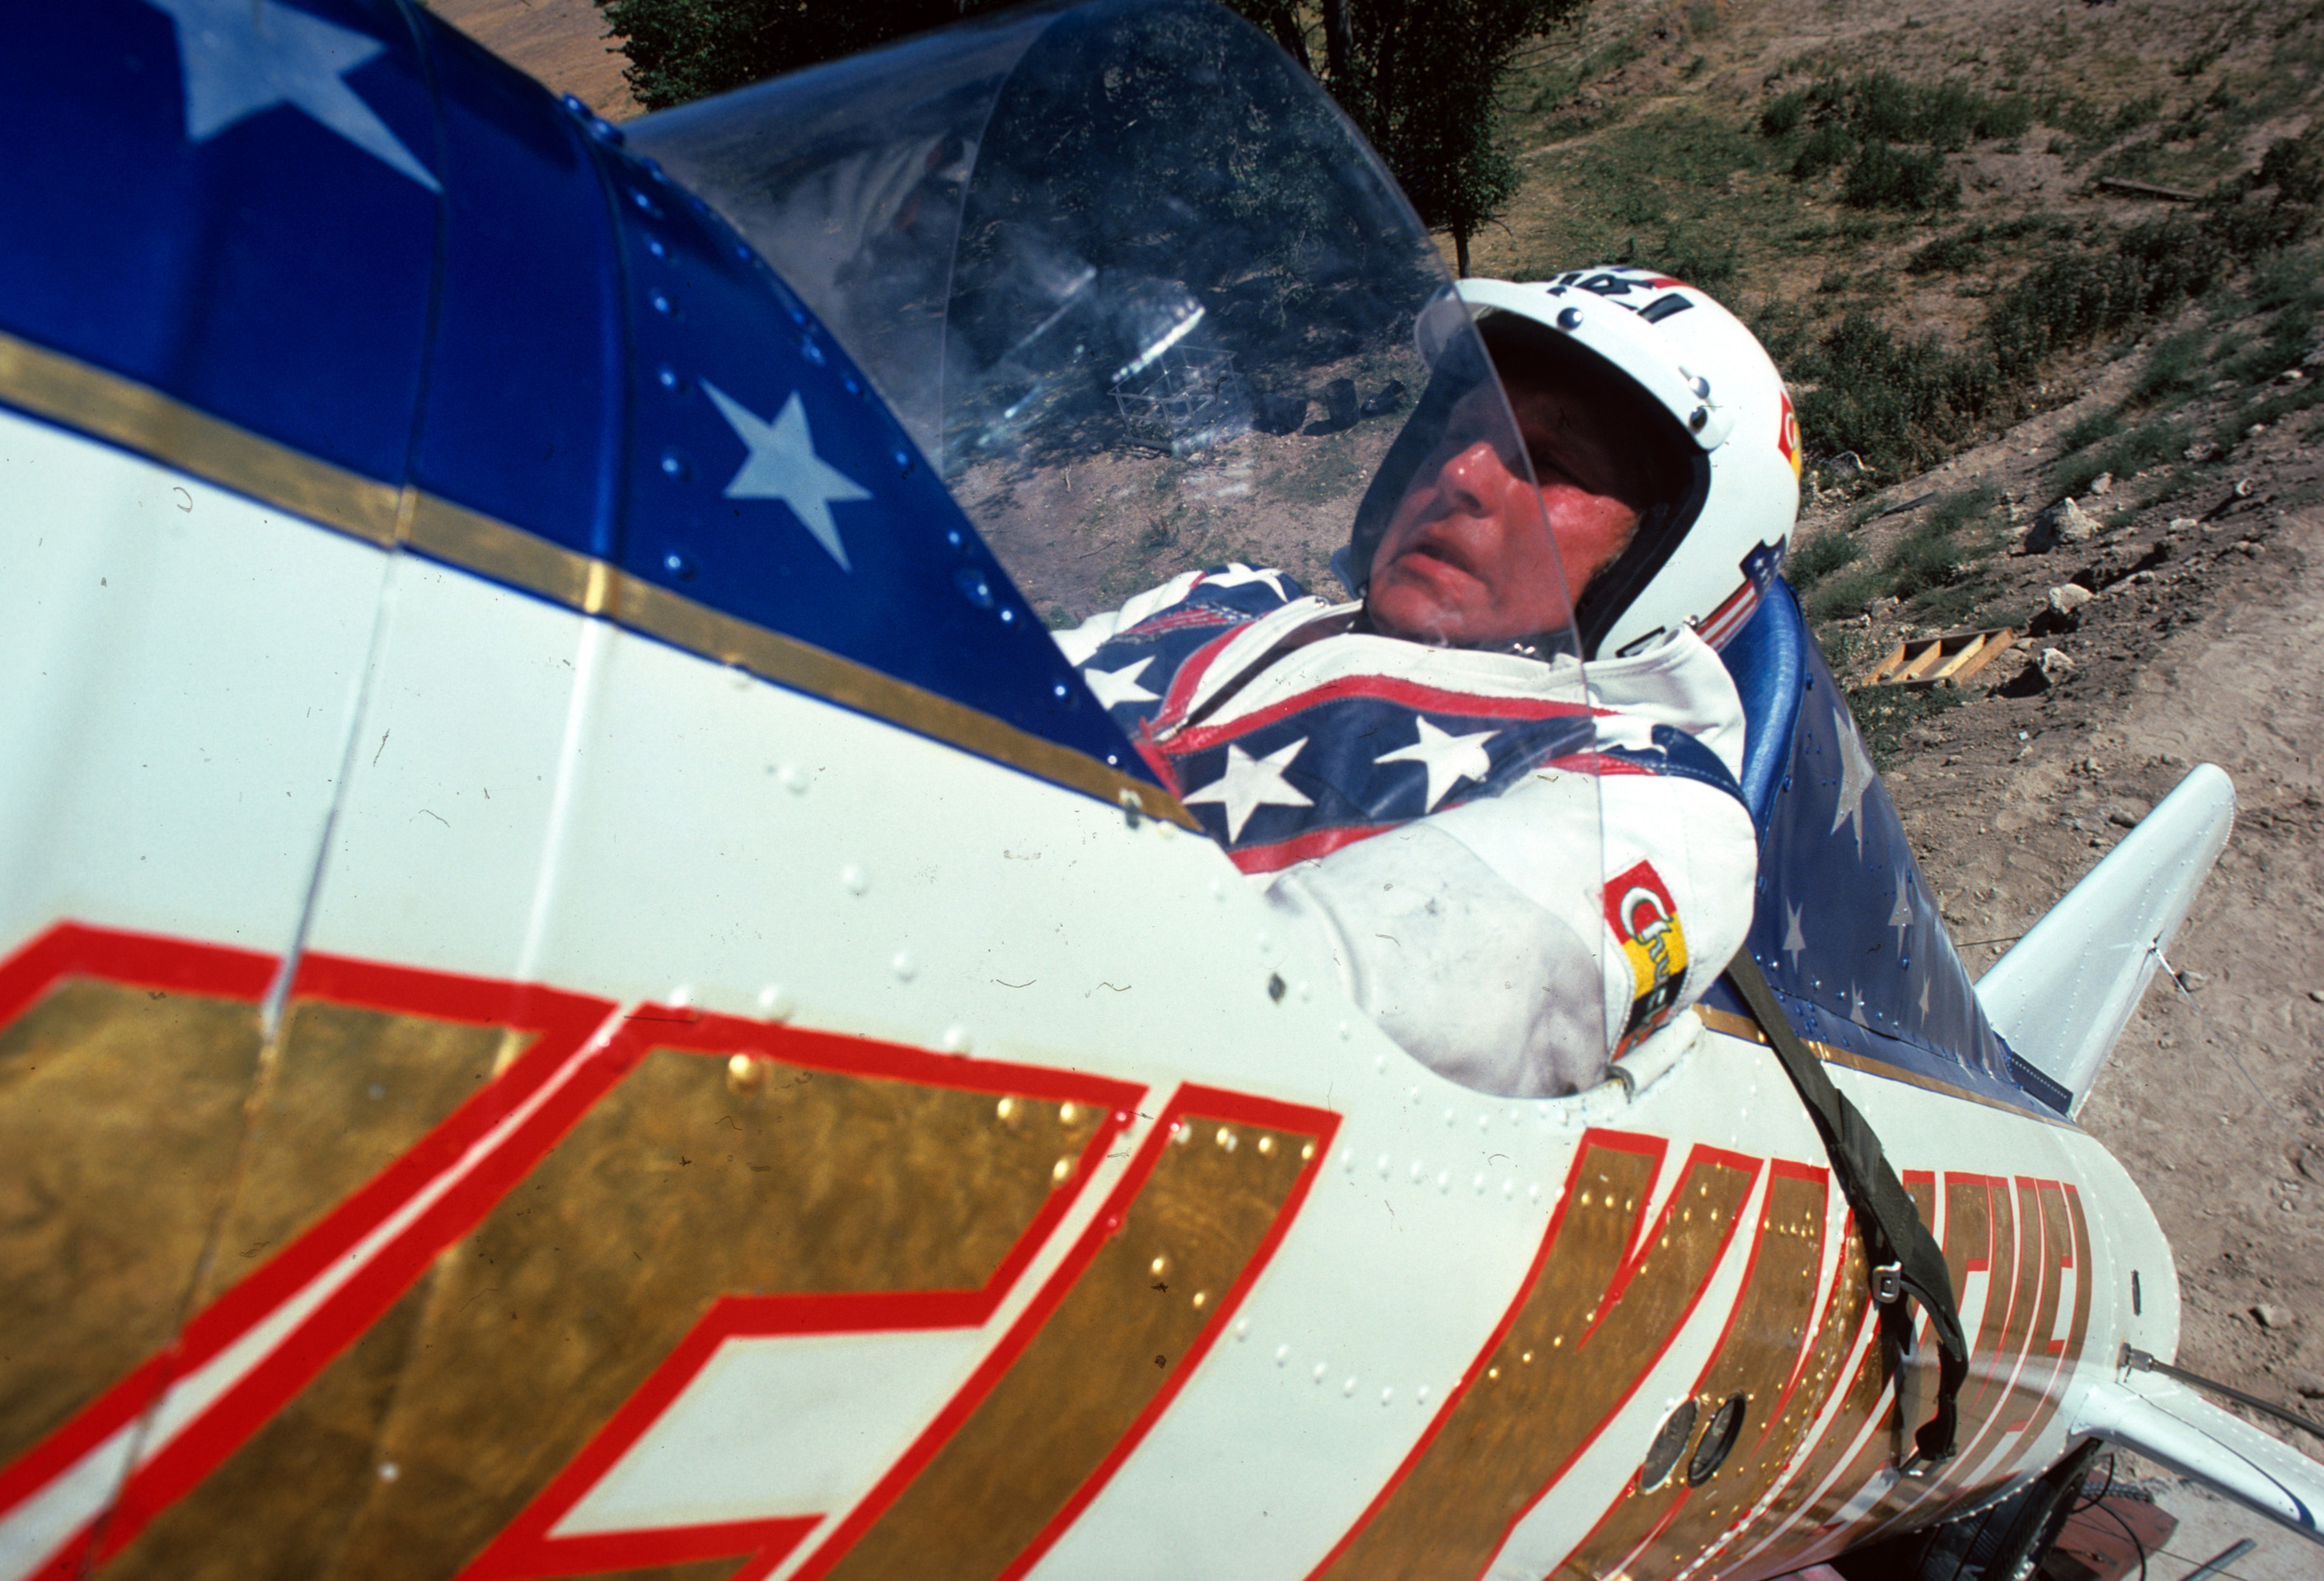 Evel Knievel prepares to launch at Snake River Canyon in 1974.